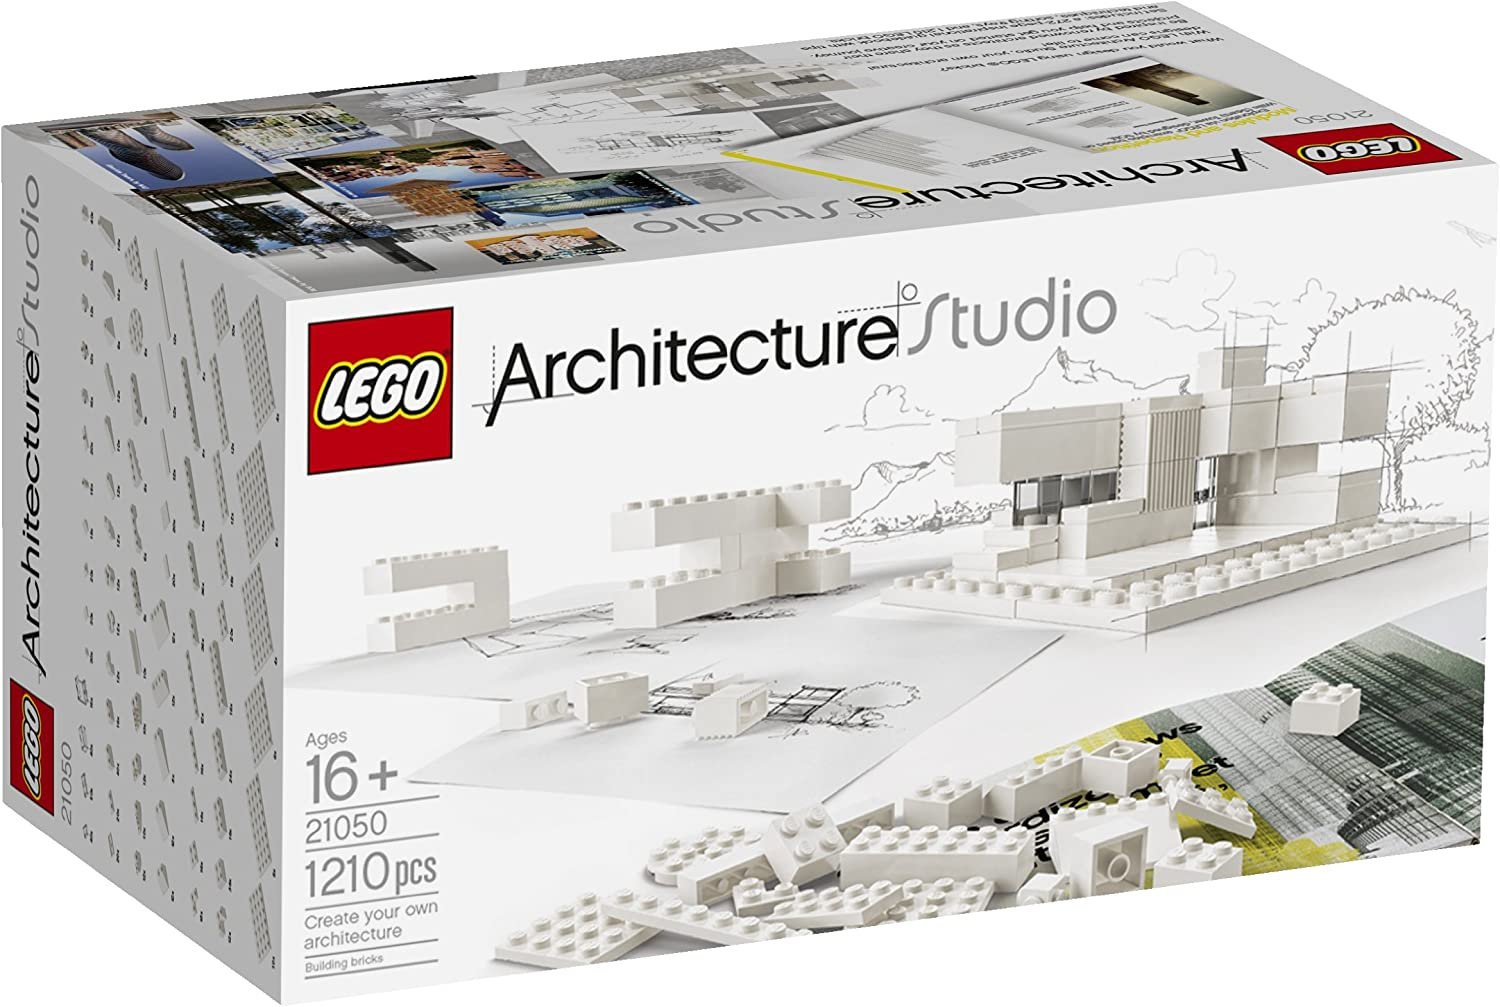 LEGO Architecture Studio (Discontinued by manufacturer)